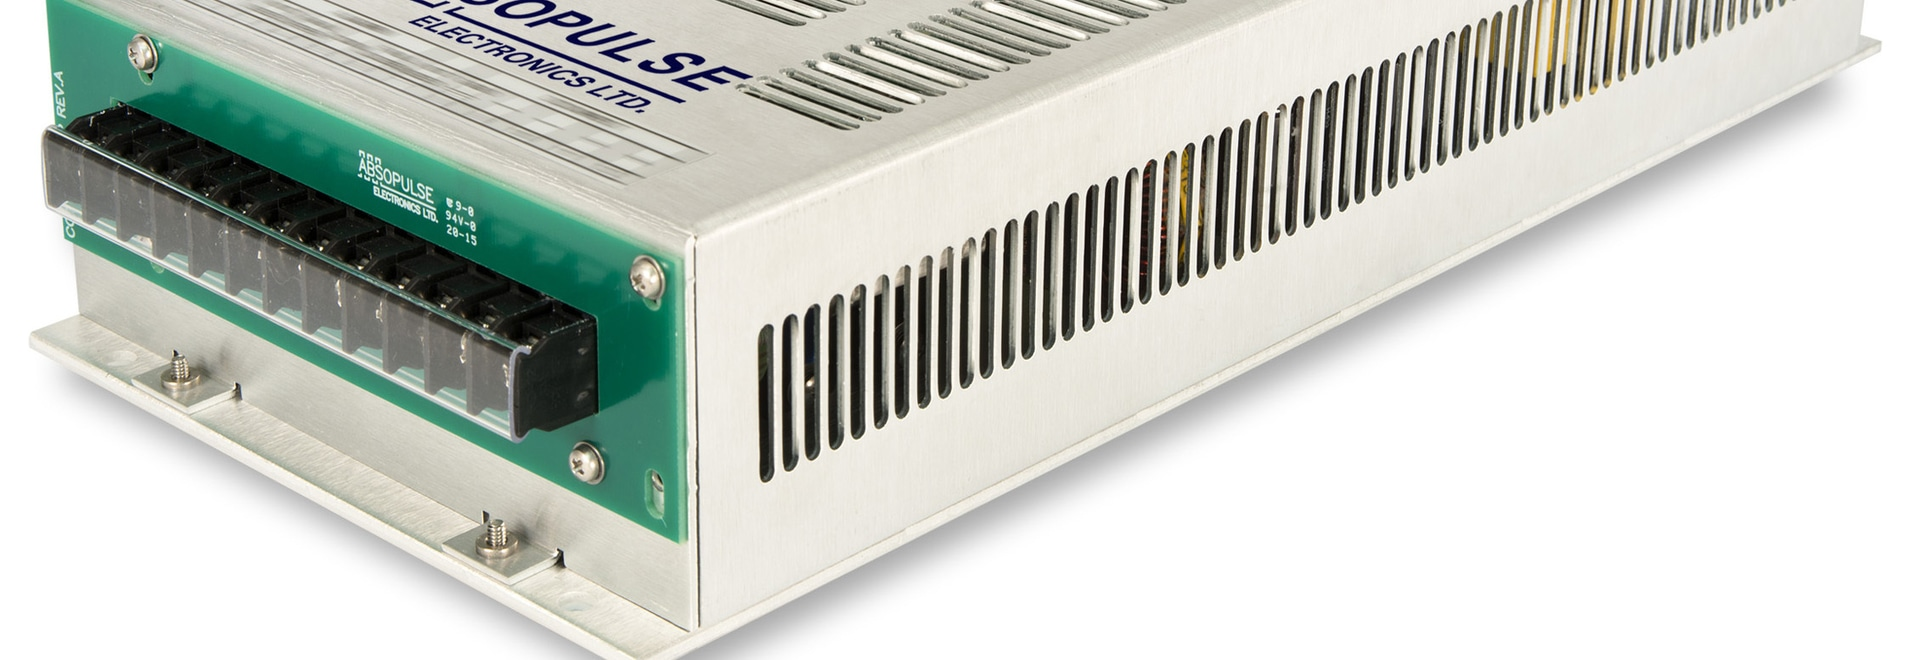 High Input Voltage DC-DC Converters Operate at High Temperatures (+85°C)